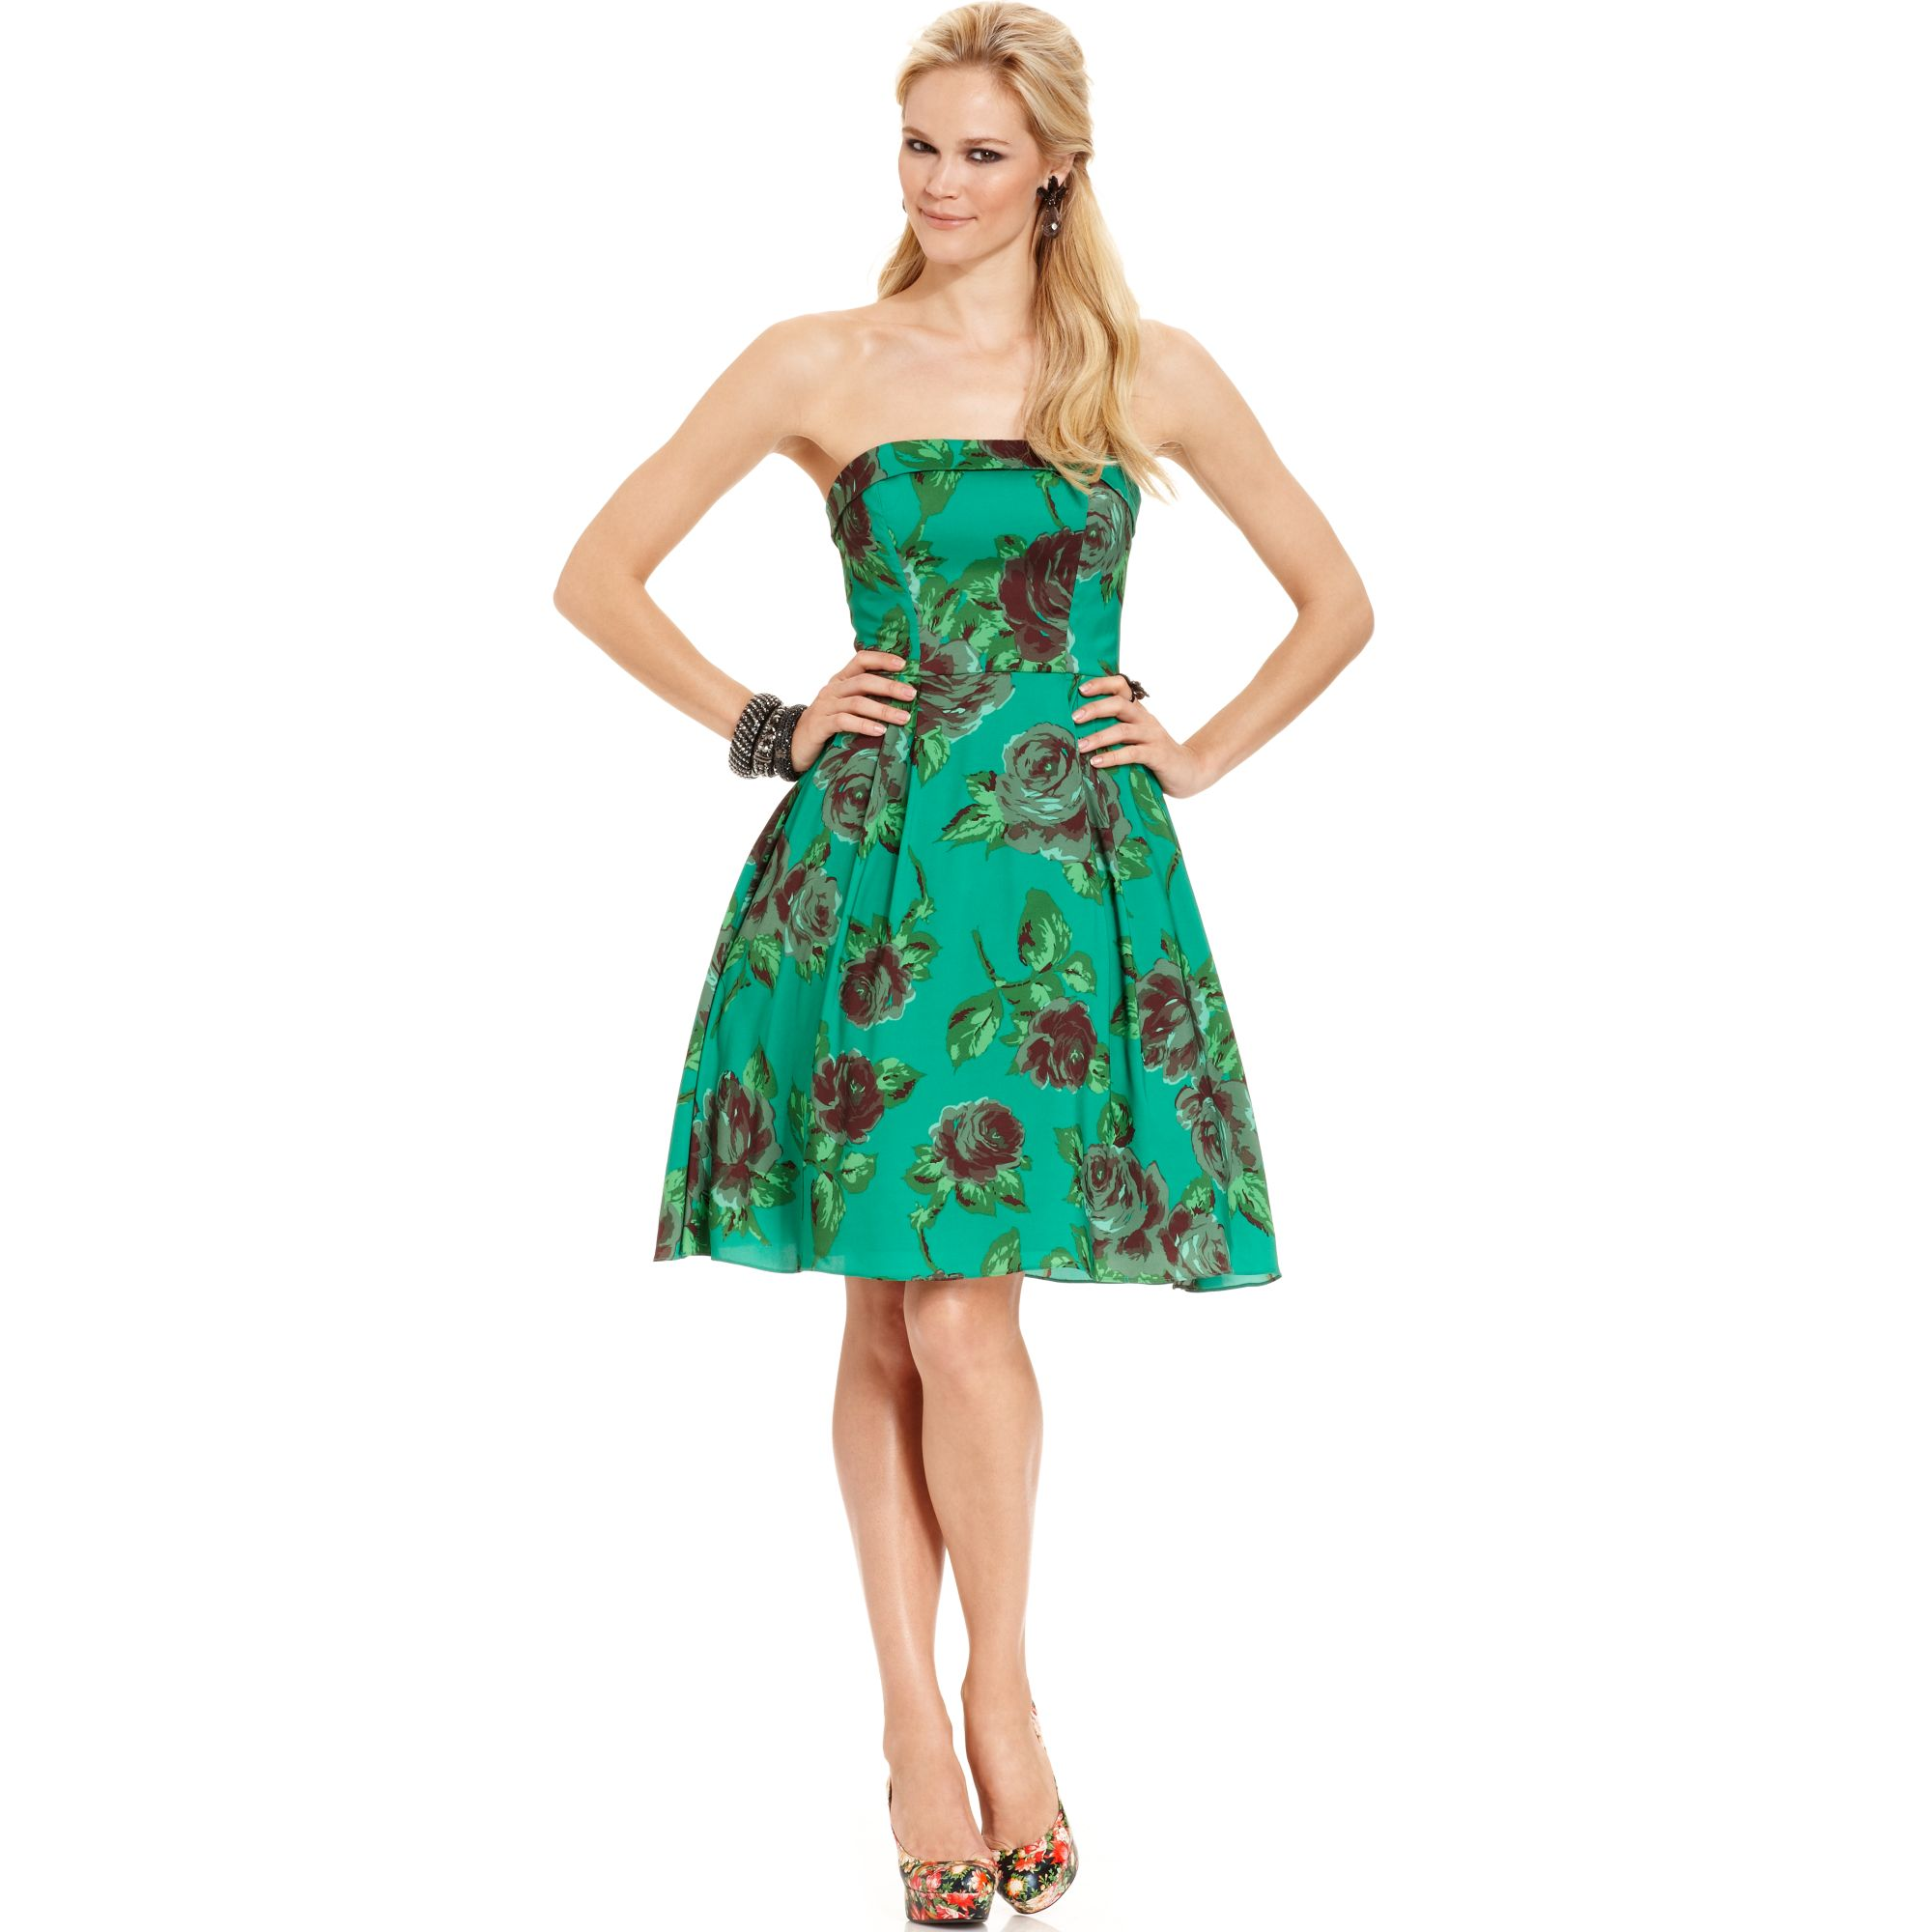 Betsey Johnson Strapless Floral Print A Line Dress In